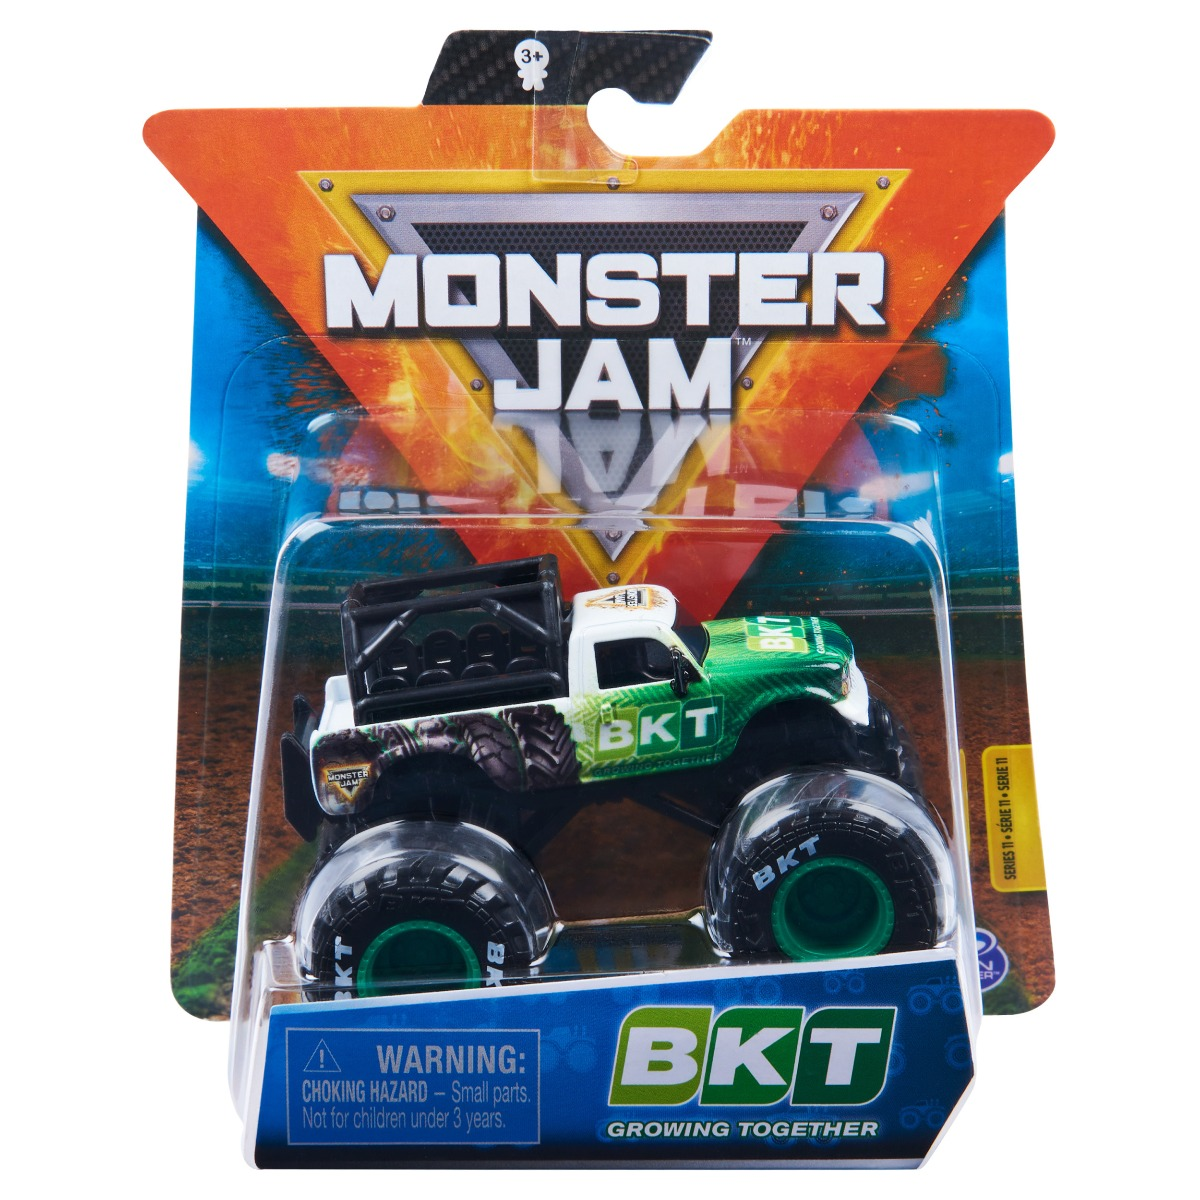 Masinuta Monster Jam, Scara 1:64, BKT Growing Together, Verde